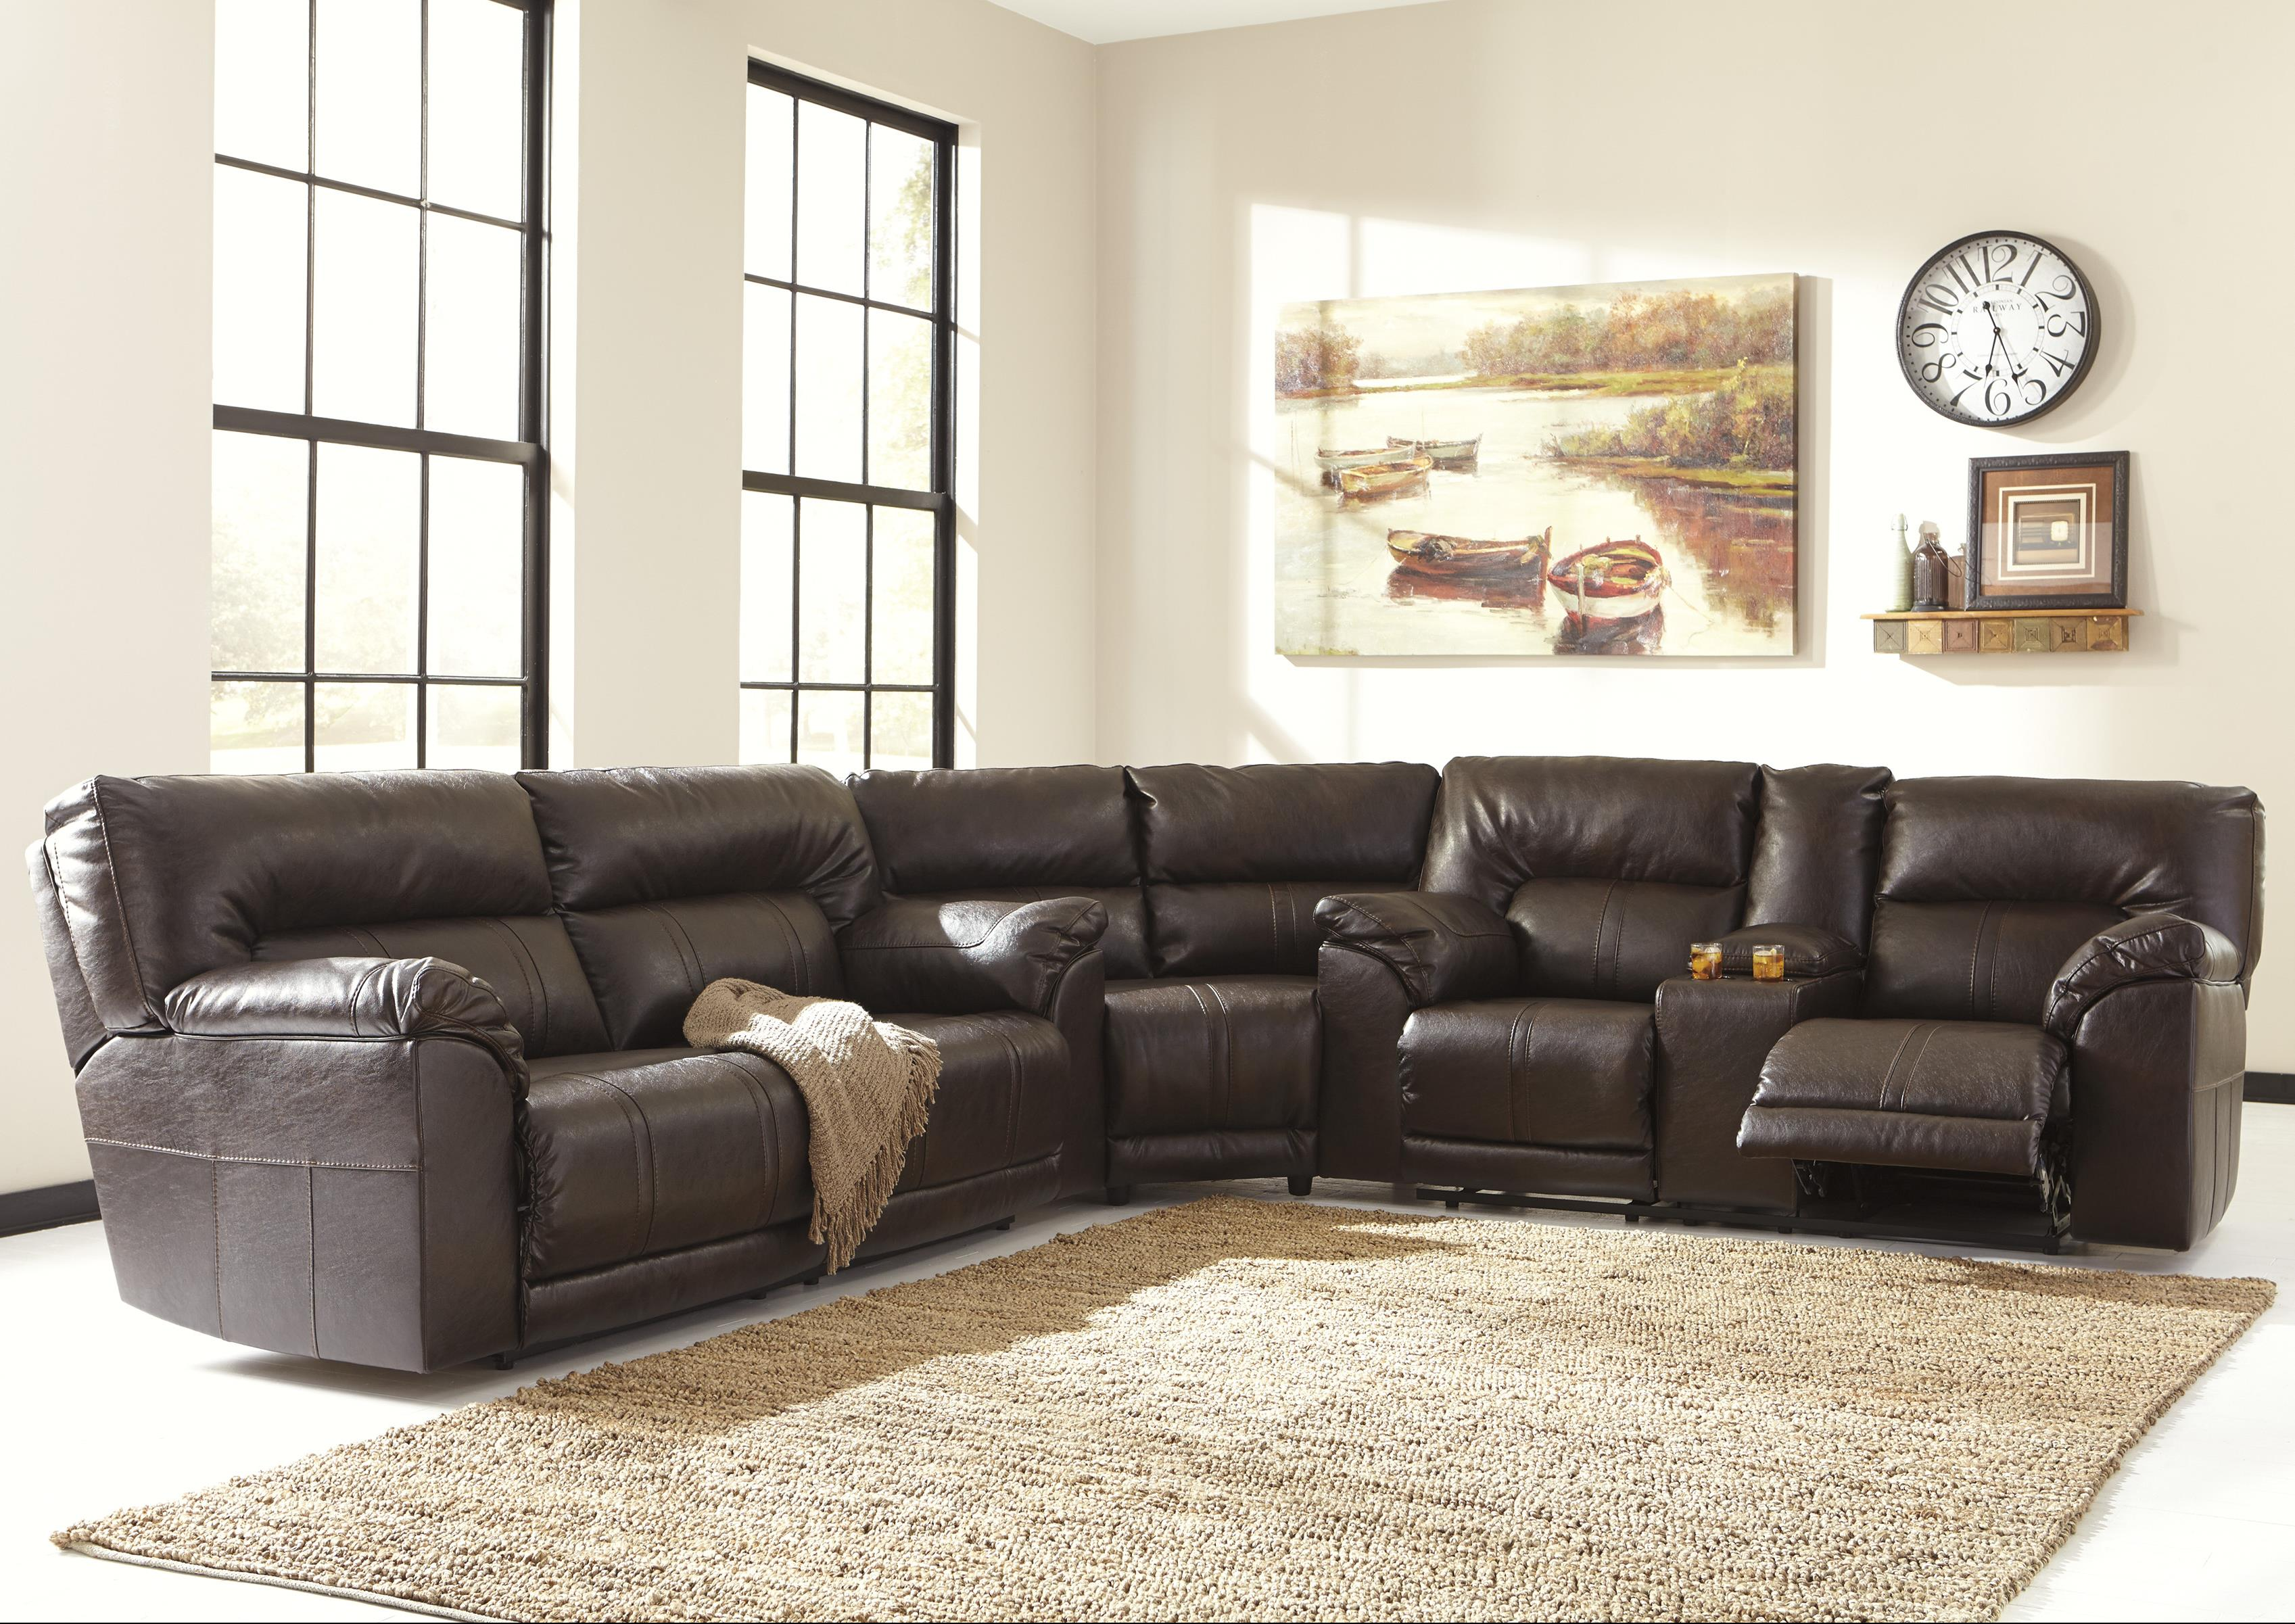 Benchcraft by Ashley Barrettsville DuraBlend® 3-Piece Reclining Sectional - Item Number 4730181 : jackson sectional - Sectionals, Sofas & Couches